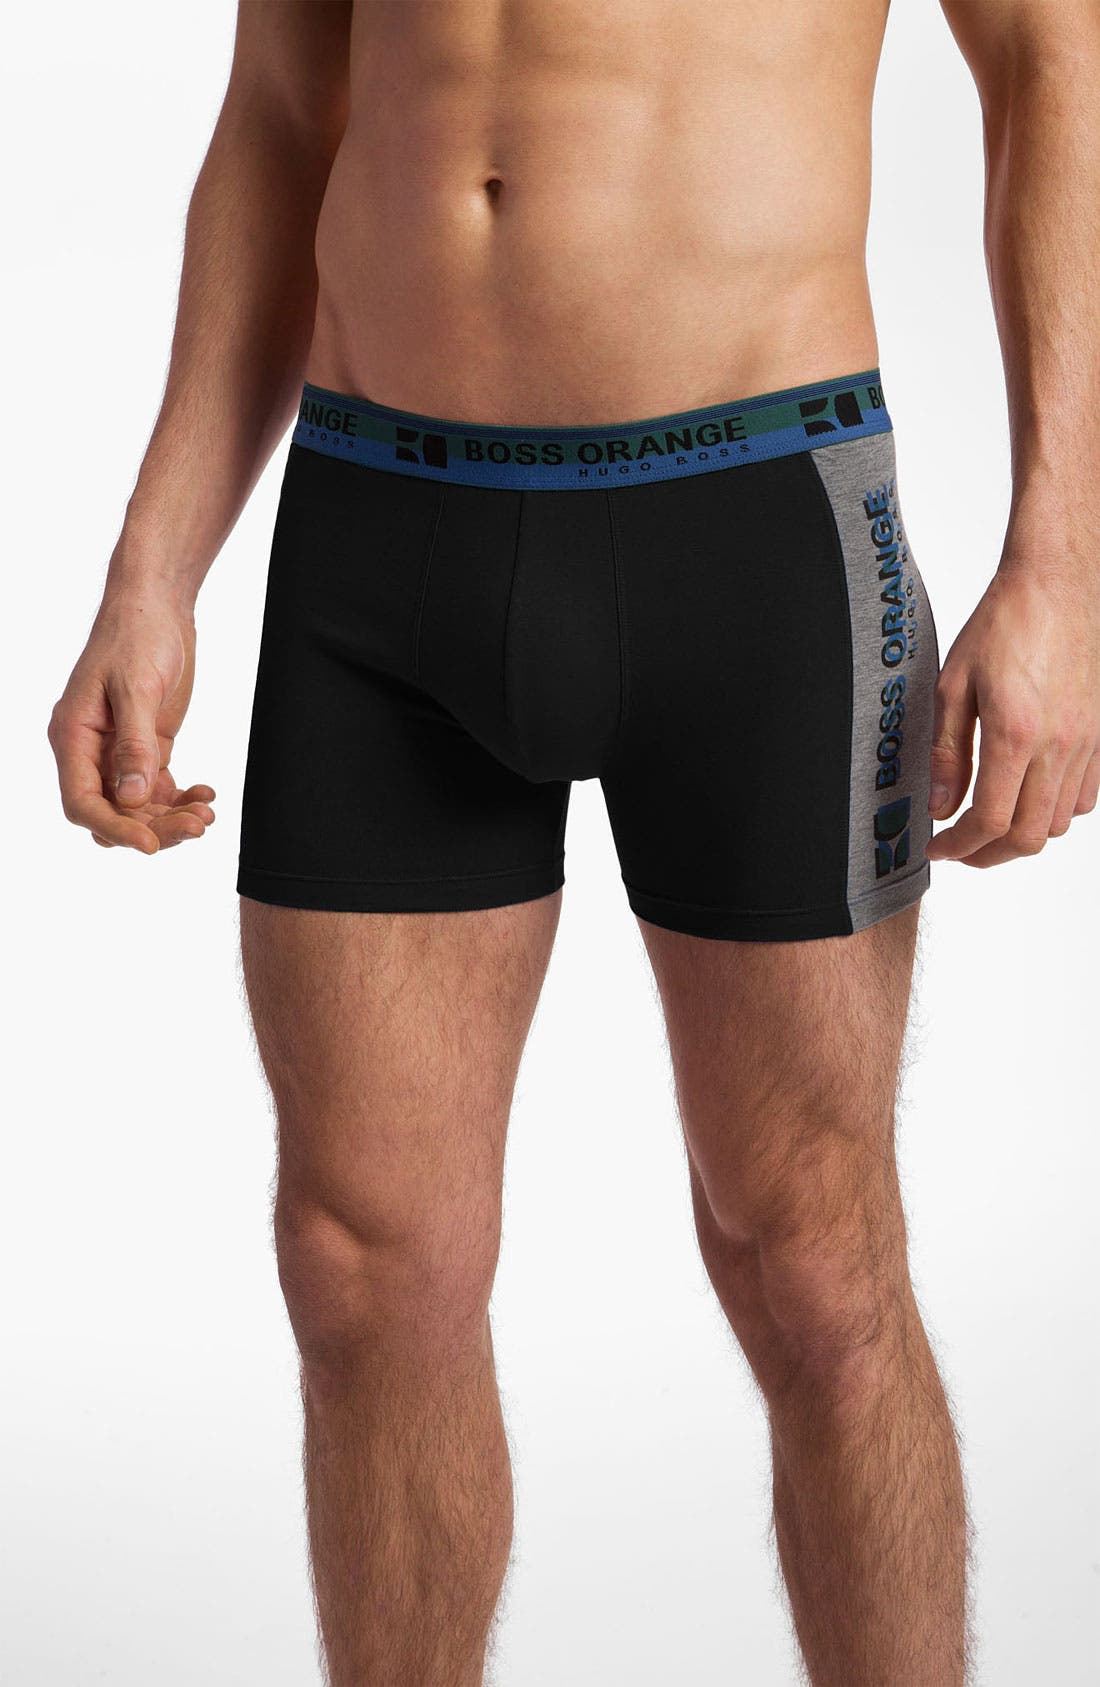 Alternate Image 1 Selected - BOSS Orange 'Innovation 11' Cyclist Boxer Briefs